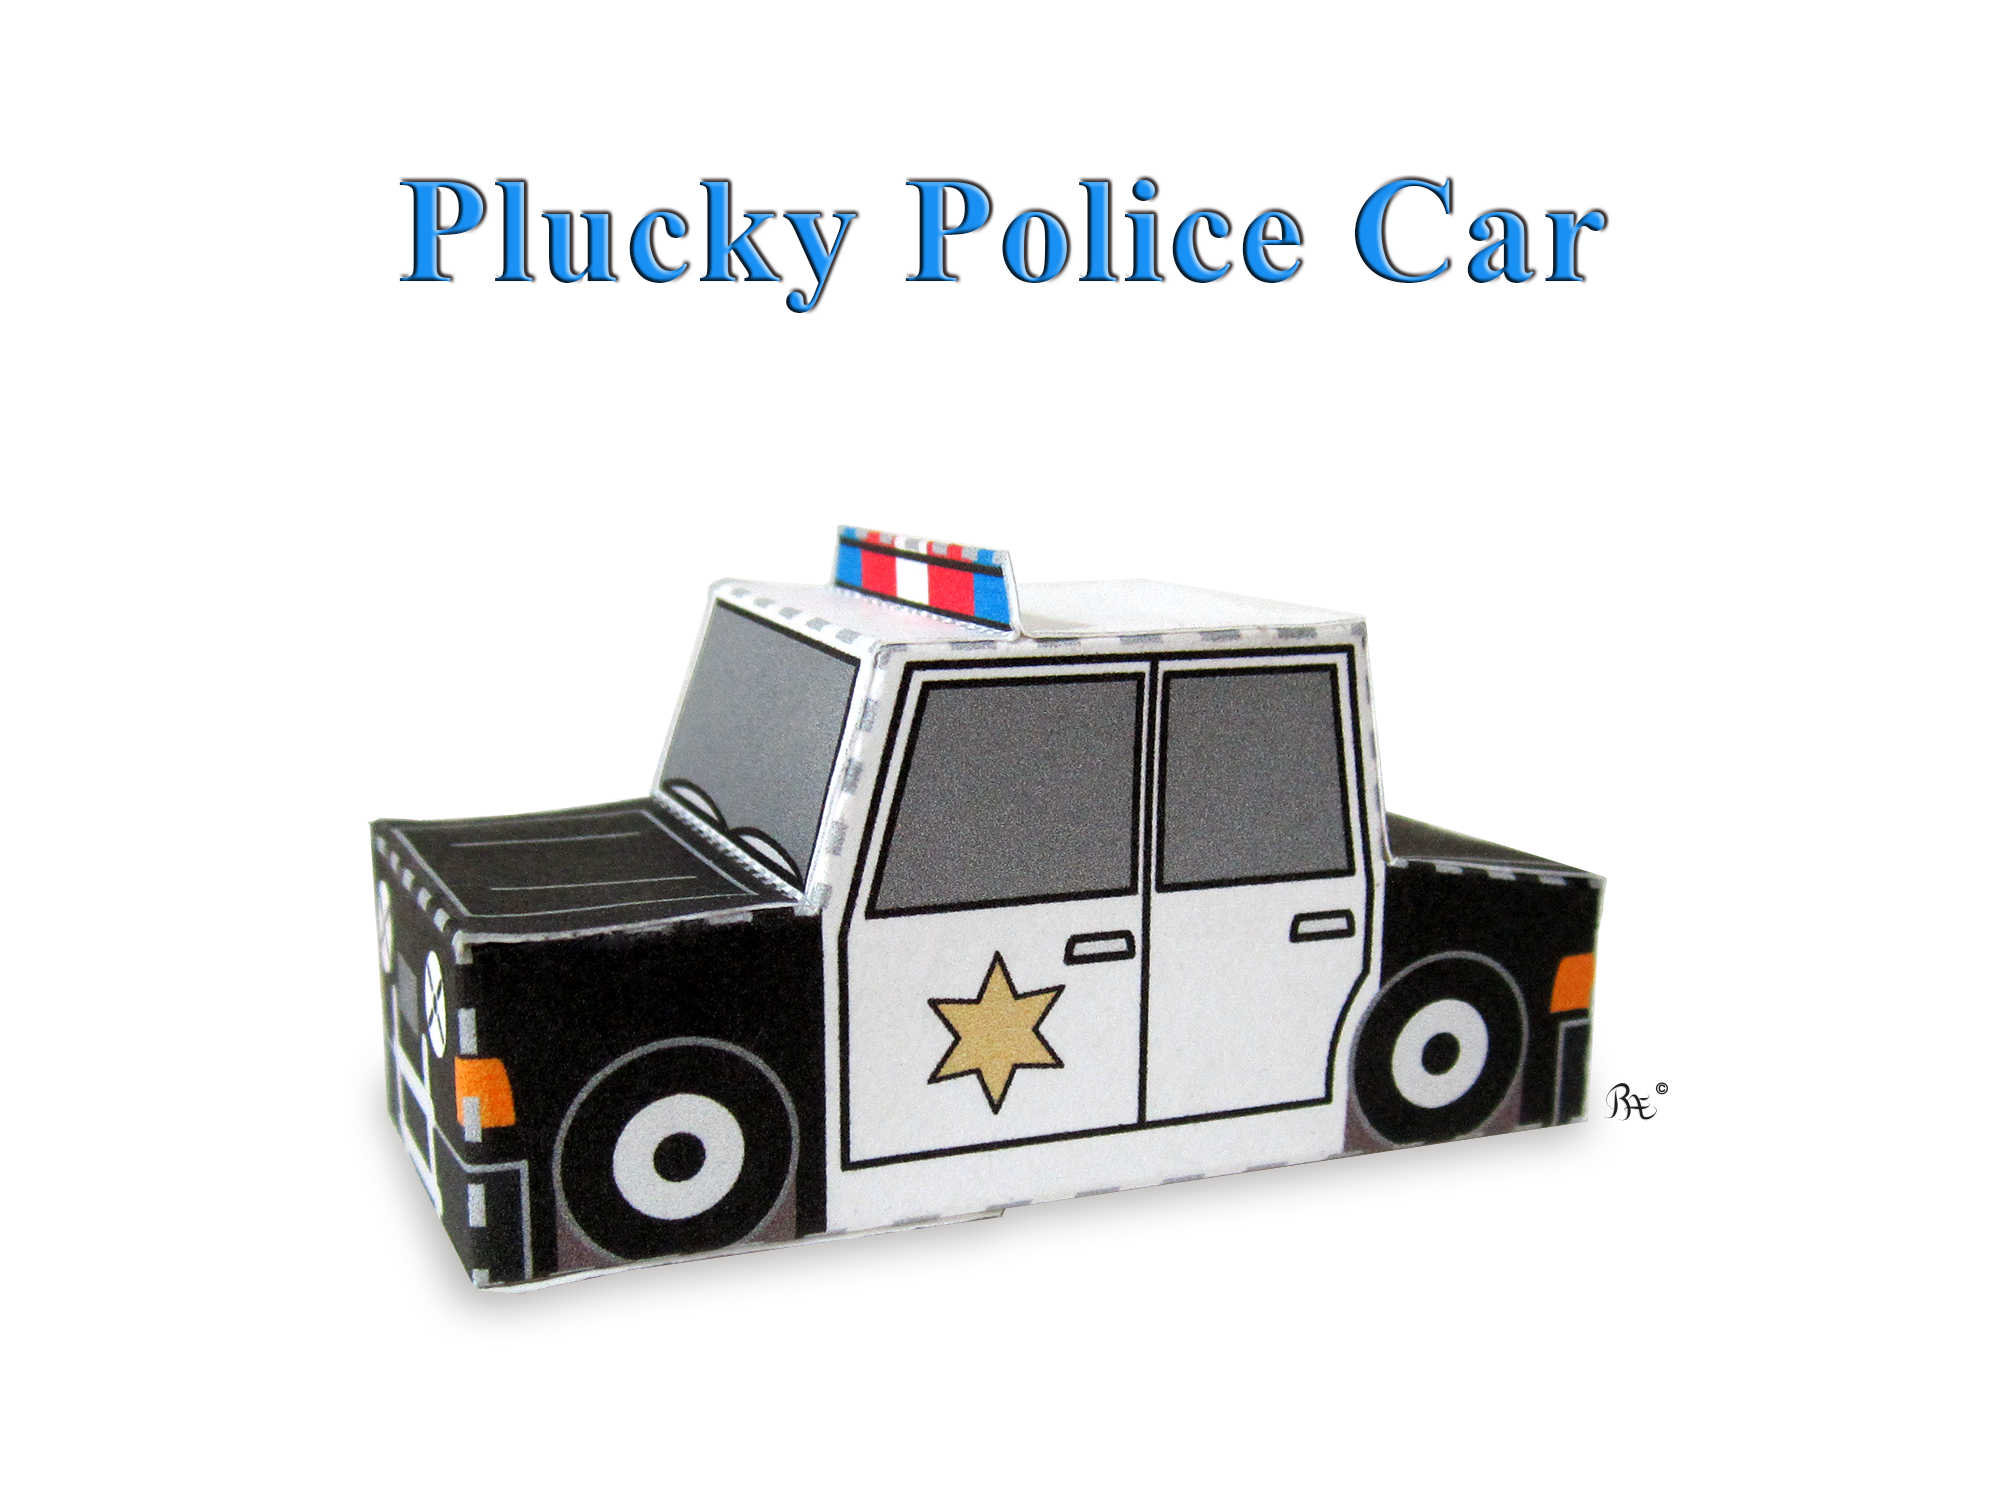 Plucky Police Car From Emergency Vehicles Set Of 3 Paper